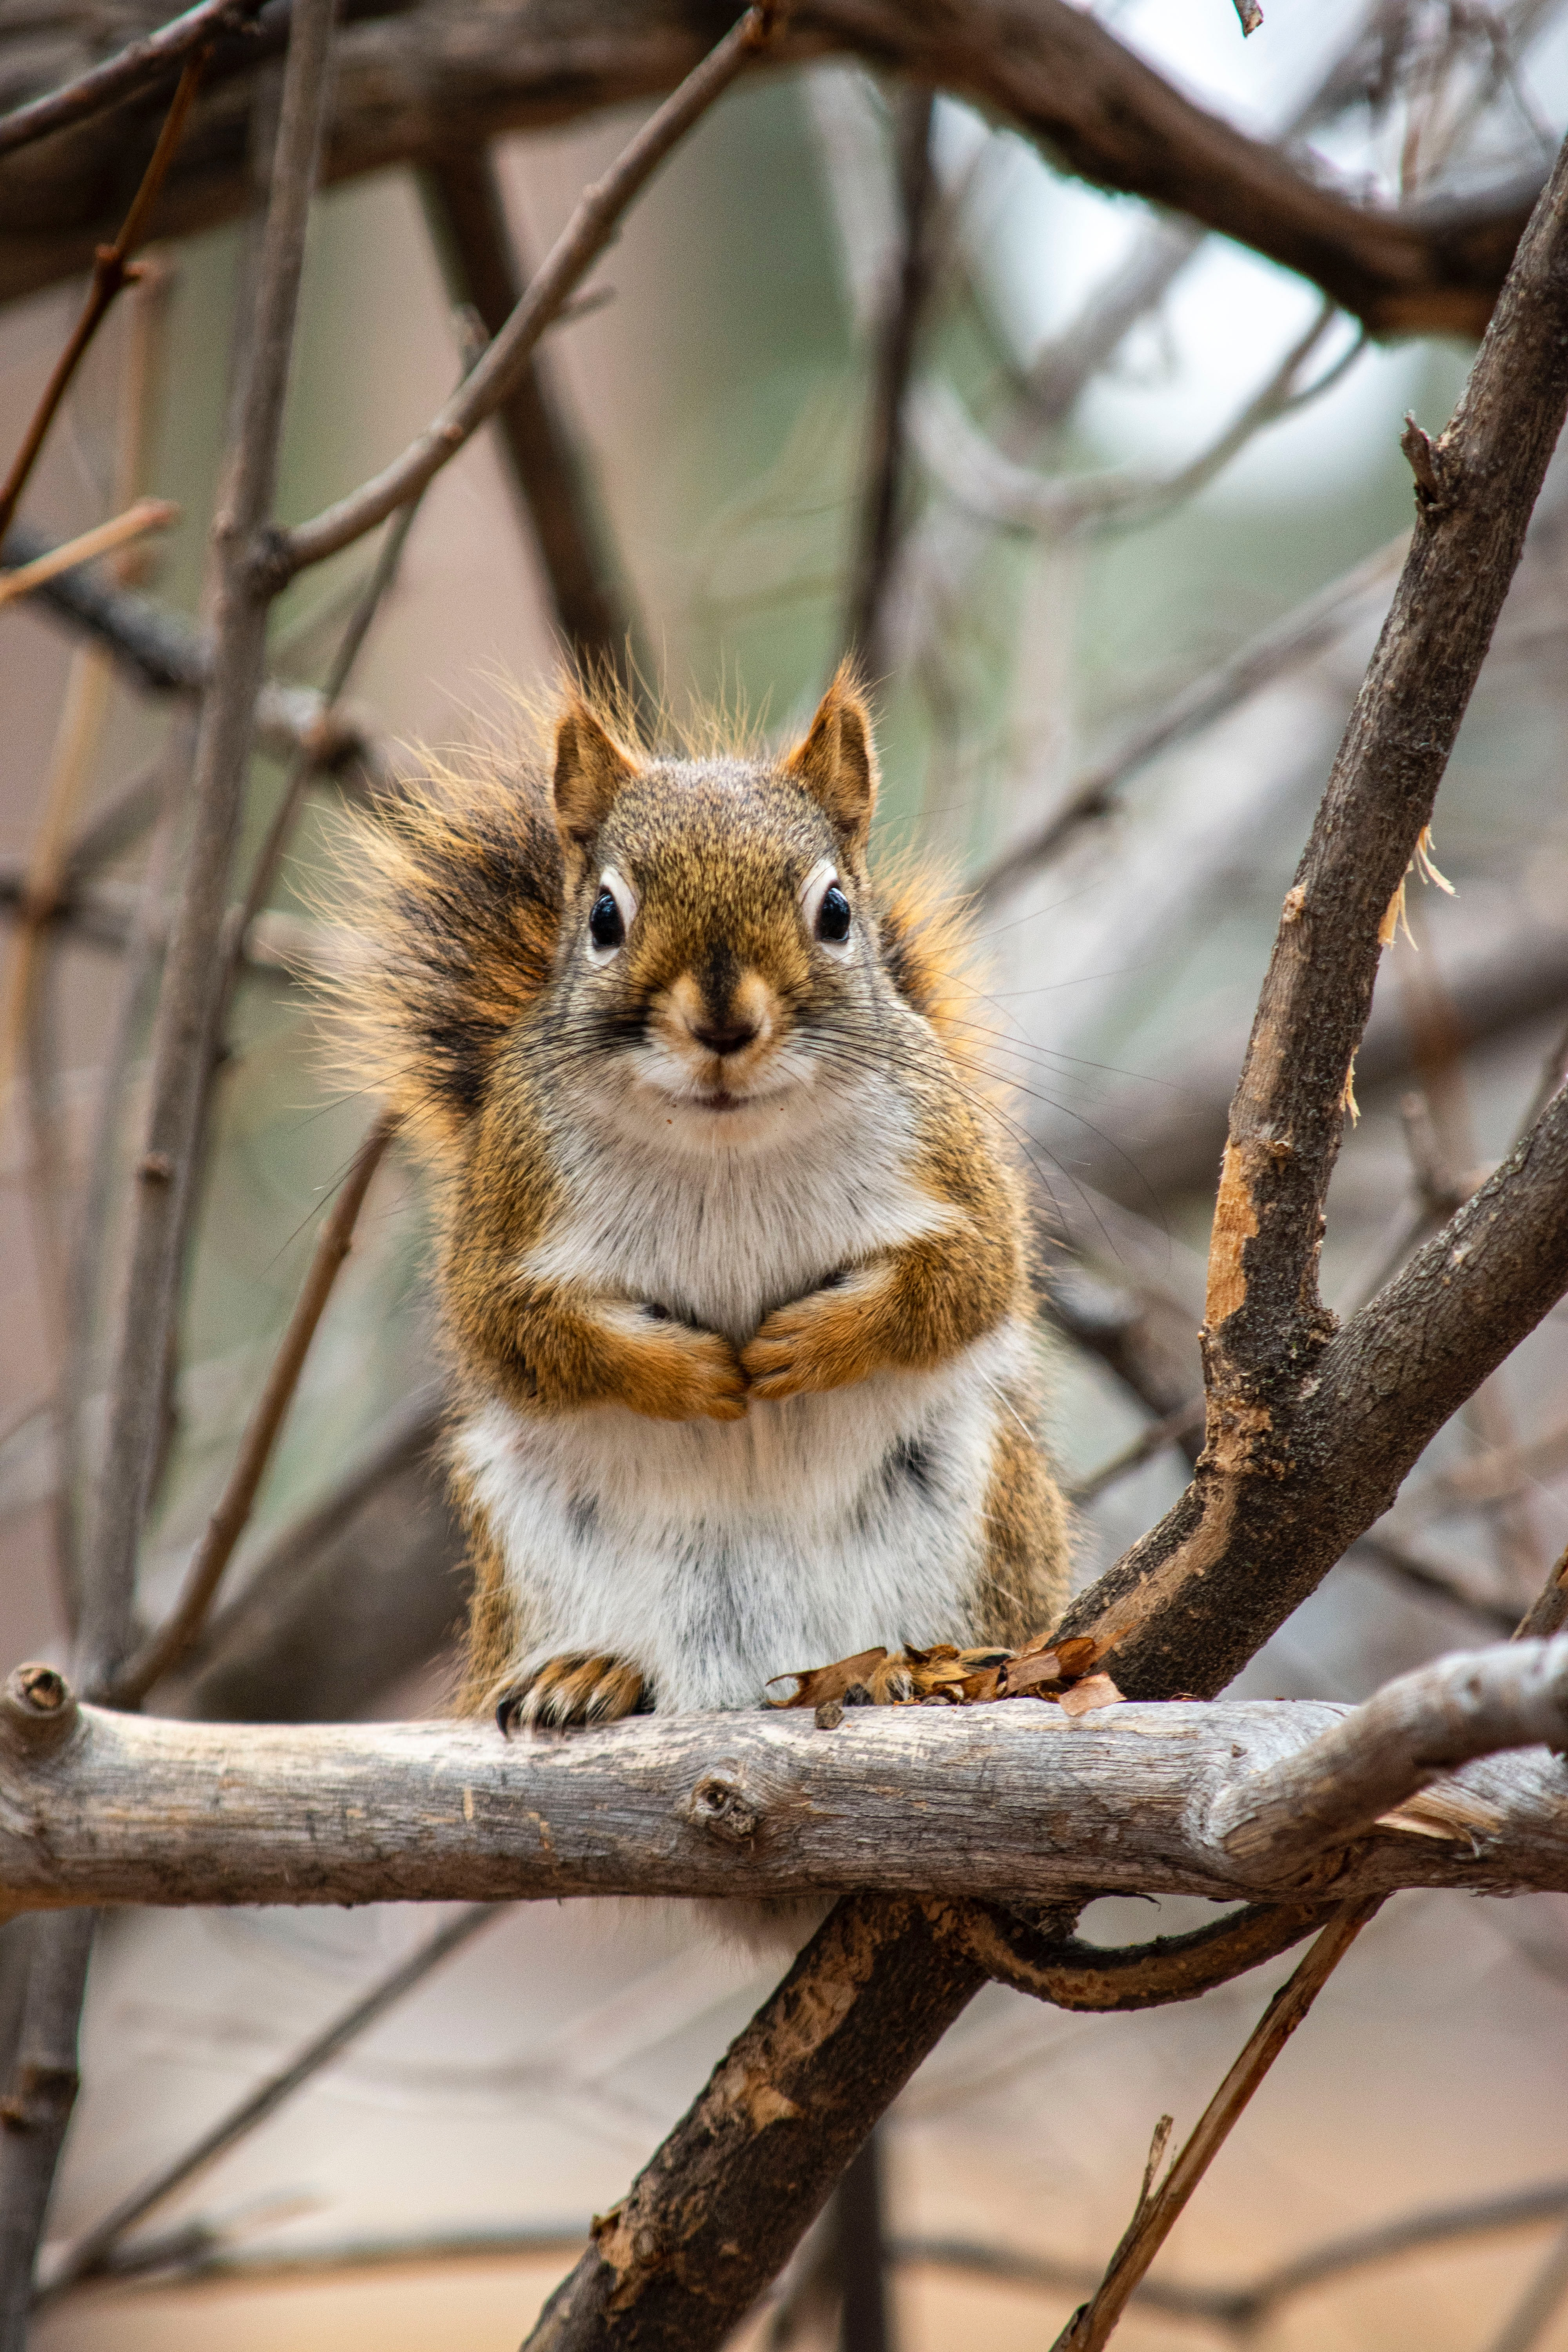 91497 download wallpaper Animals, Squirrel, Animal, Branches, Nice, Sweetheart screensavers and pictures for free